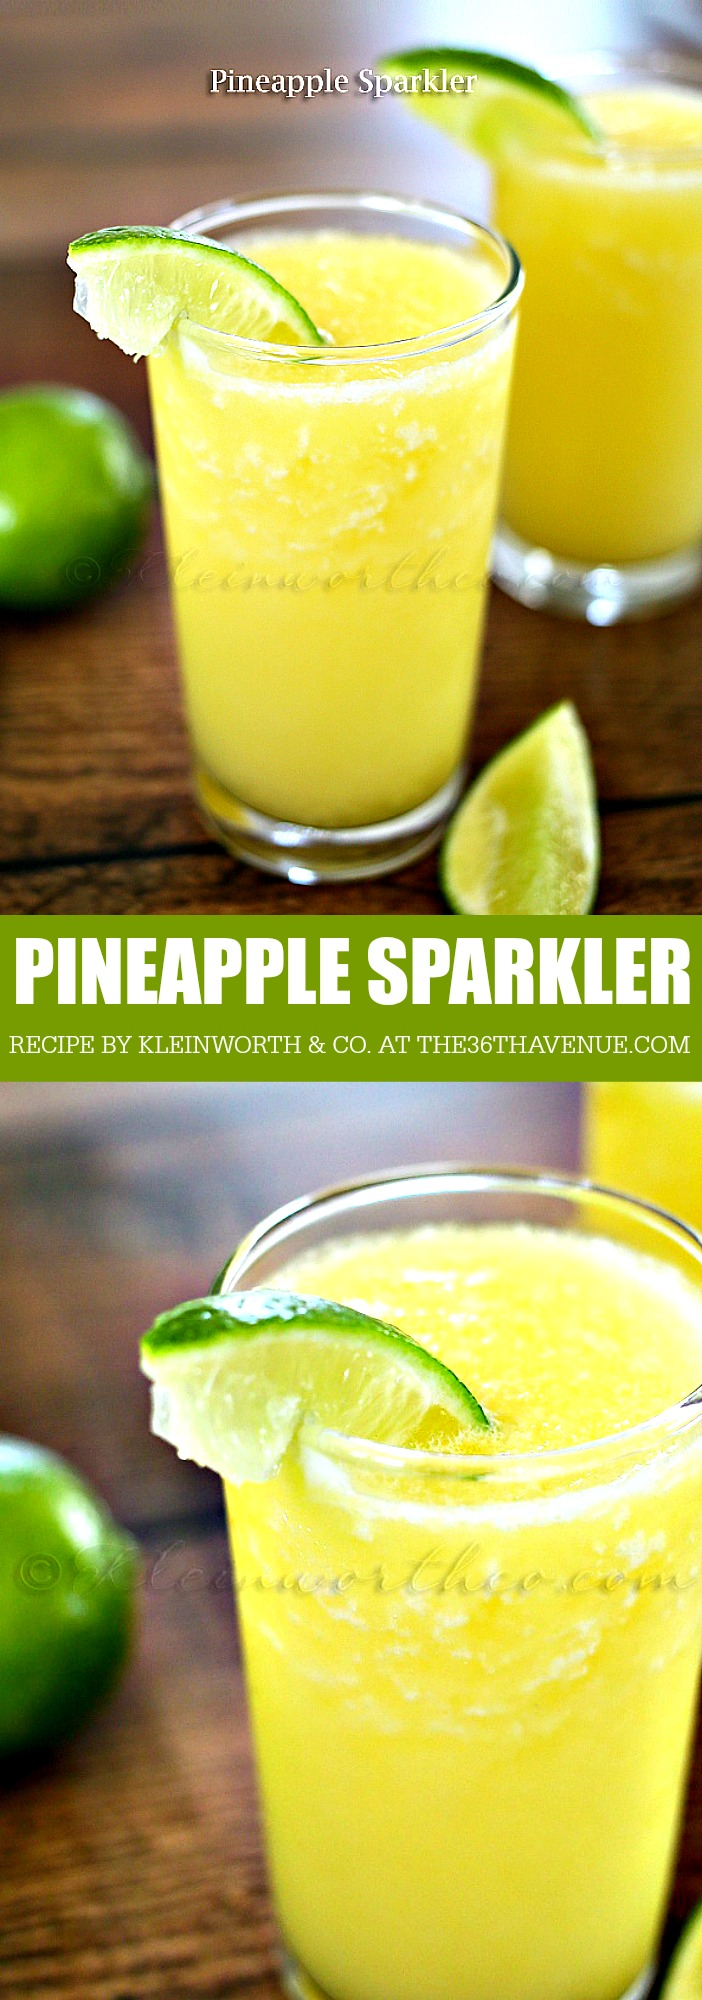 PINEAPPLE SPARKLER the36thavenue.com